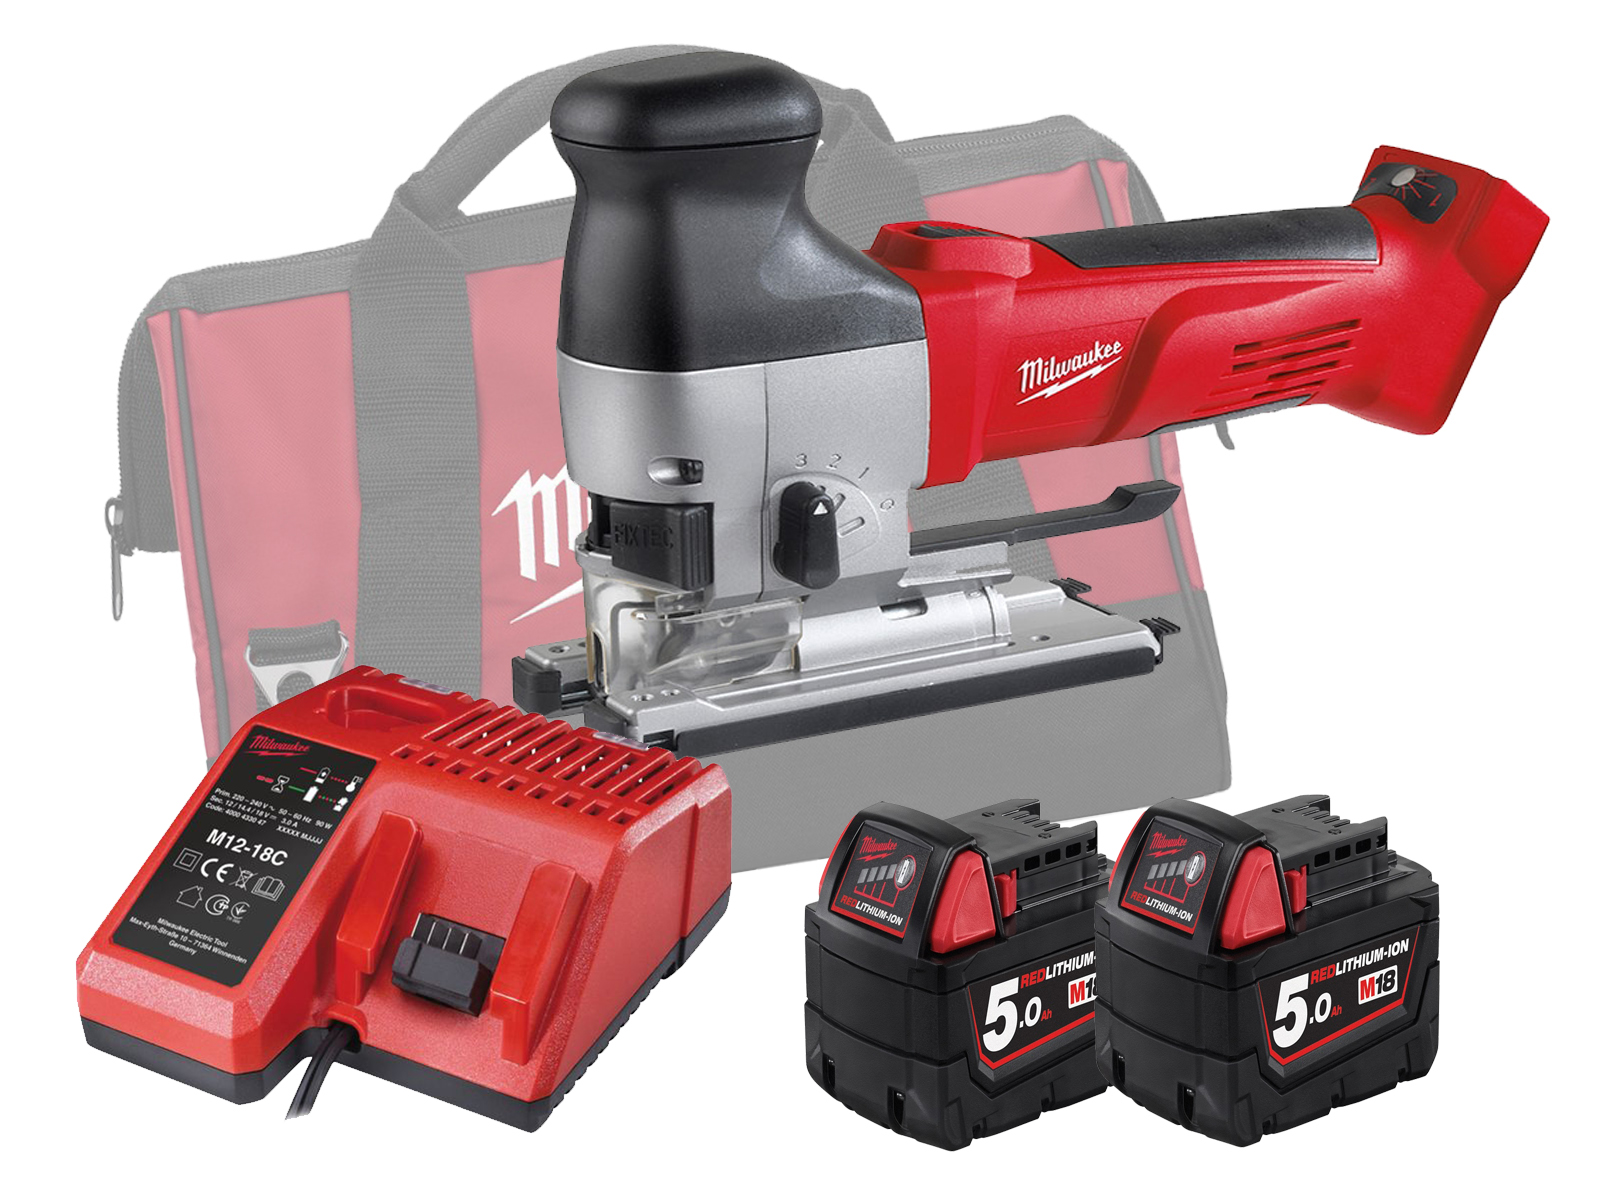 MILWAUKEE 18V HEAVY-DUTY BODY GRIP JIGSAW - HD18JSB - 5.0AH PACK